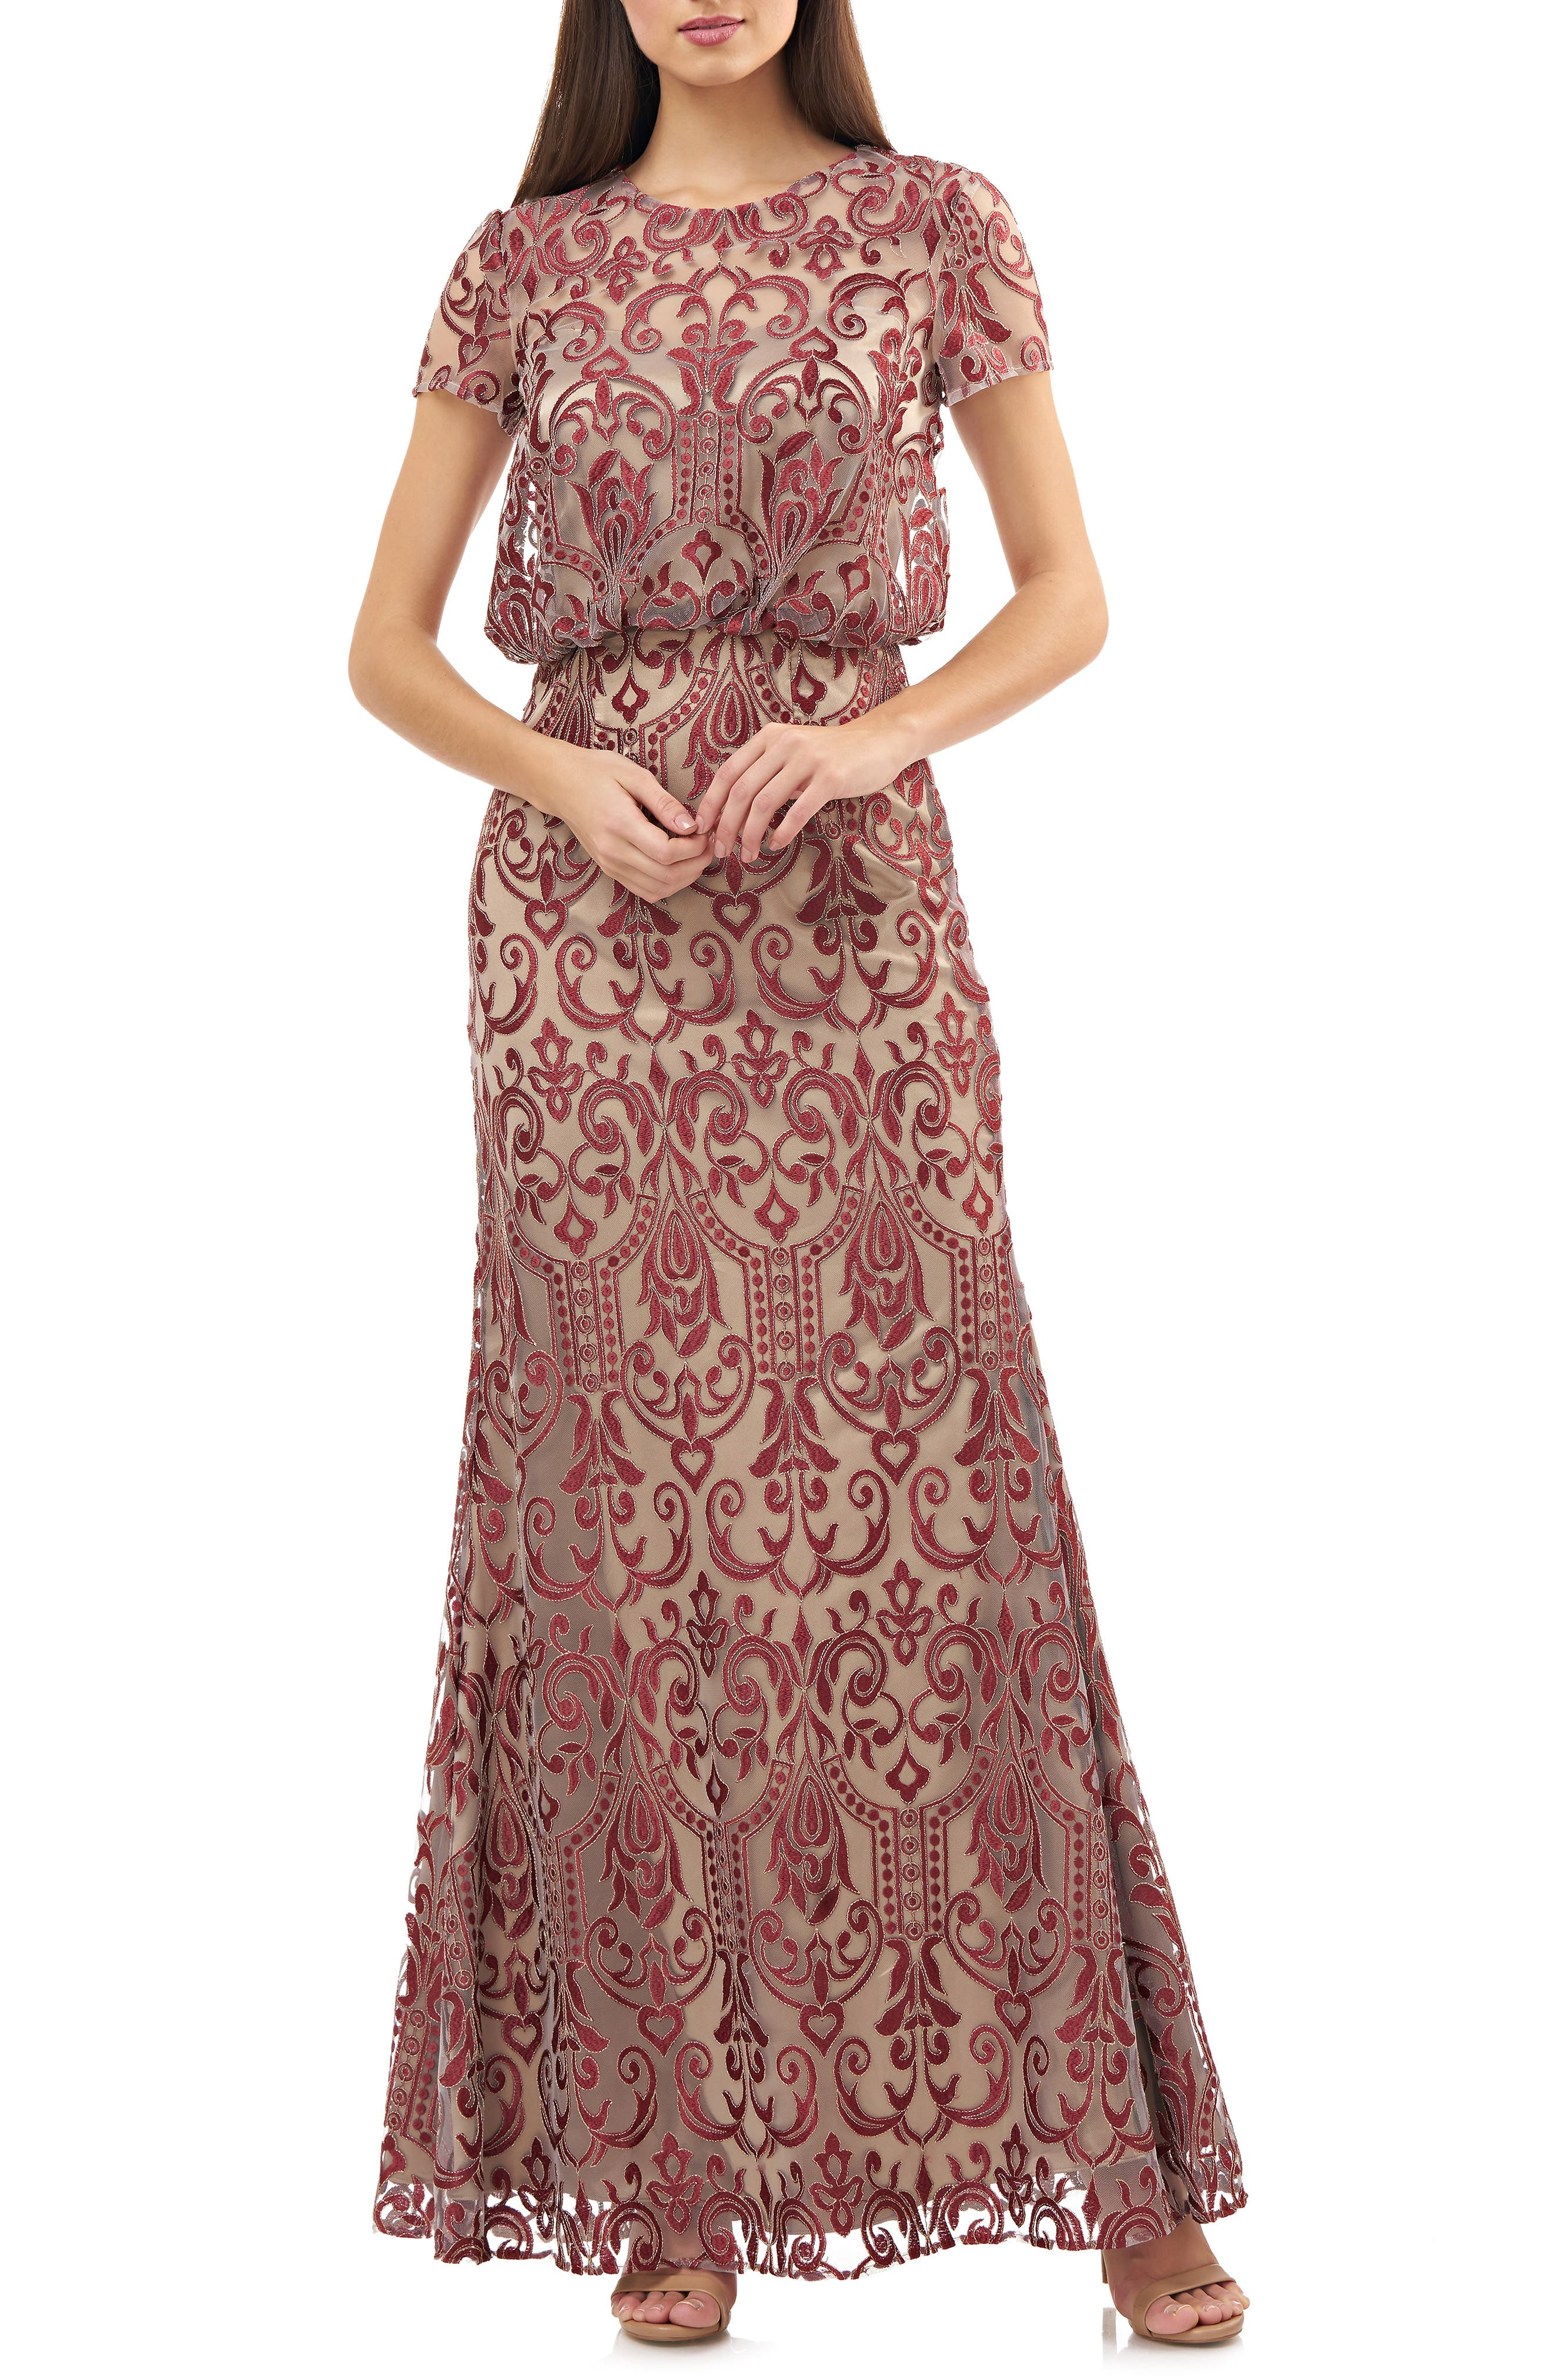 Downton Abbey Inspired Dresses Womens Js Collections Blouson Lace Gown $348.00 AT vintagedancer.com